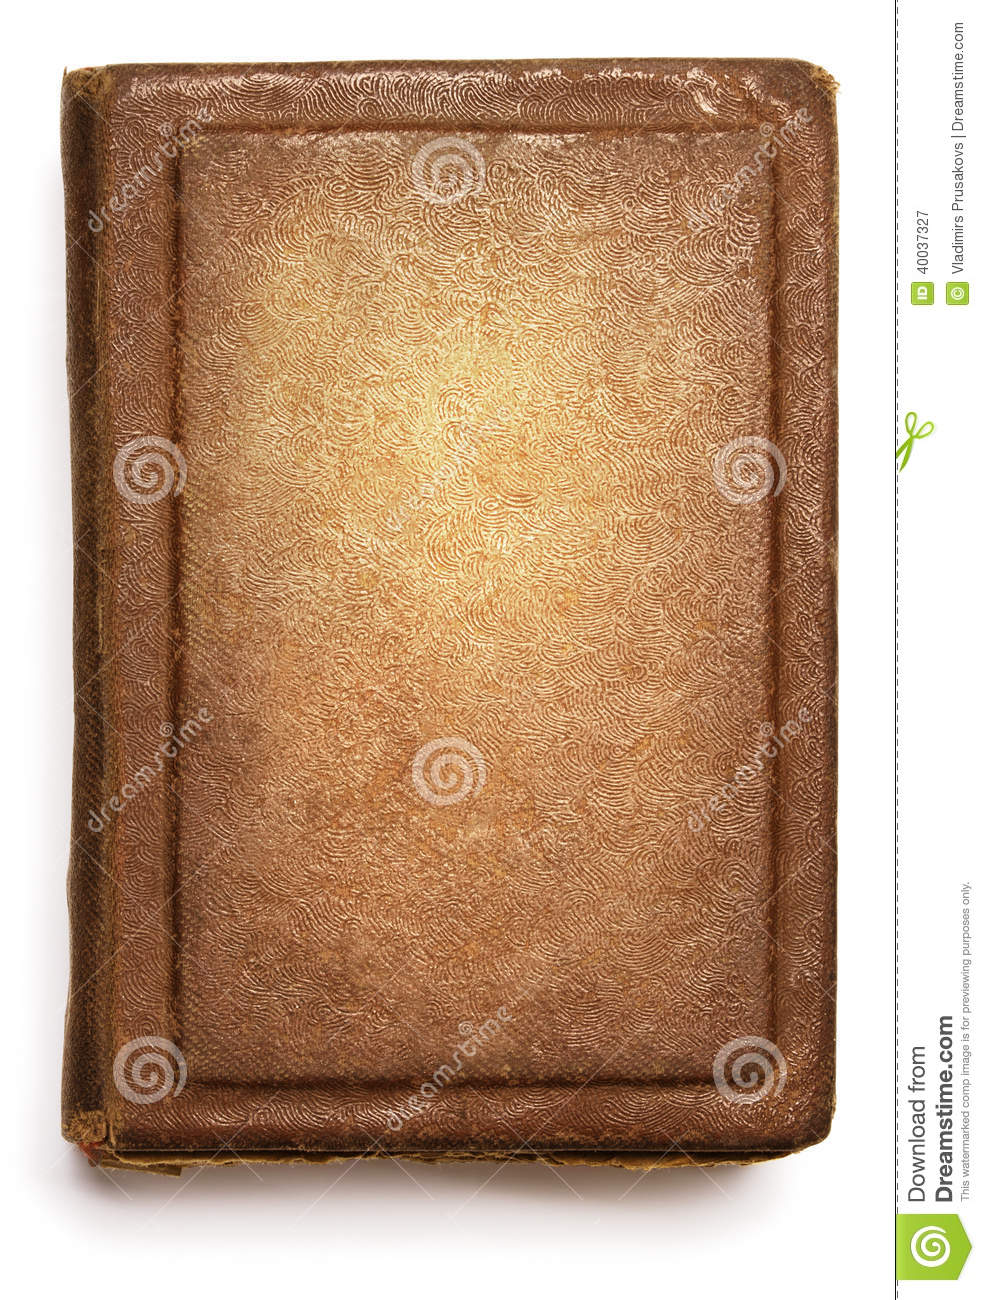 Grunge Book Cover Texture : Old book cover blank texture empty grunge design on white